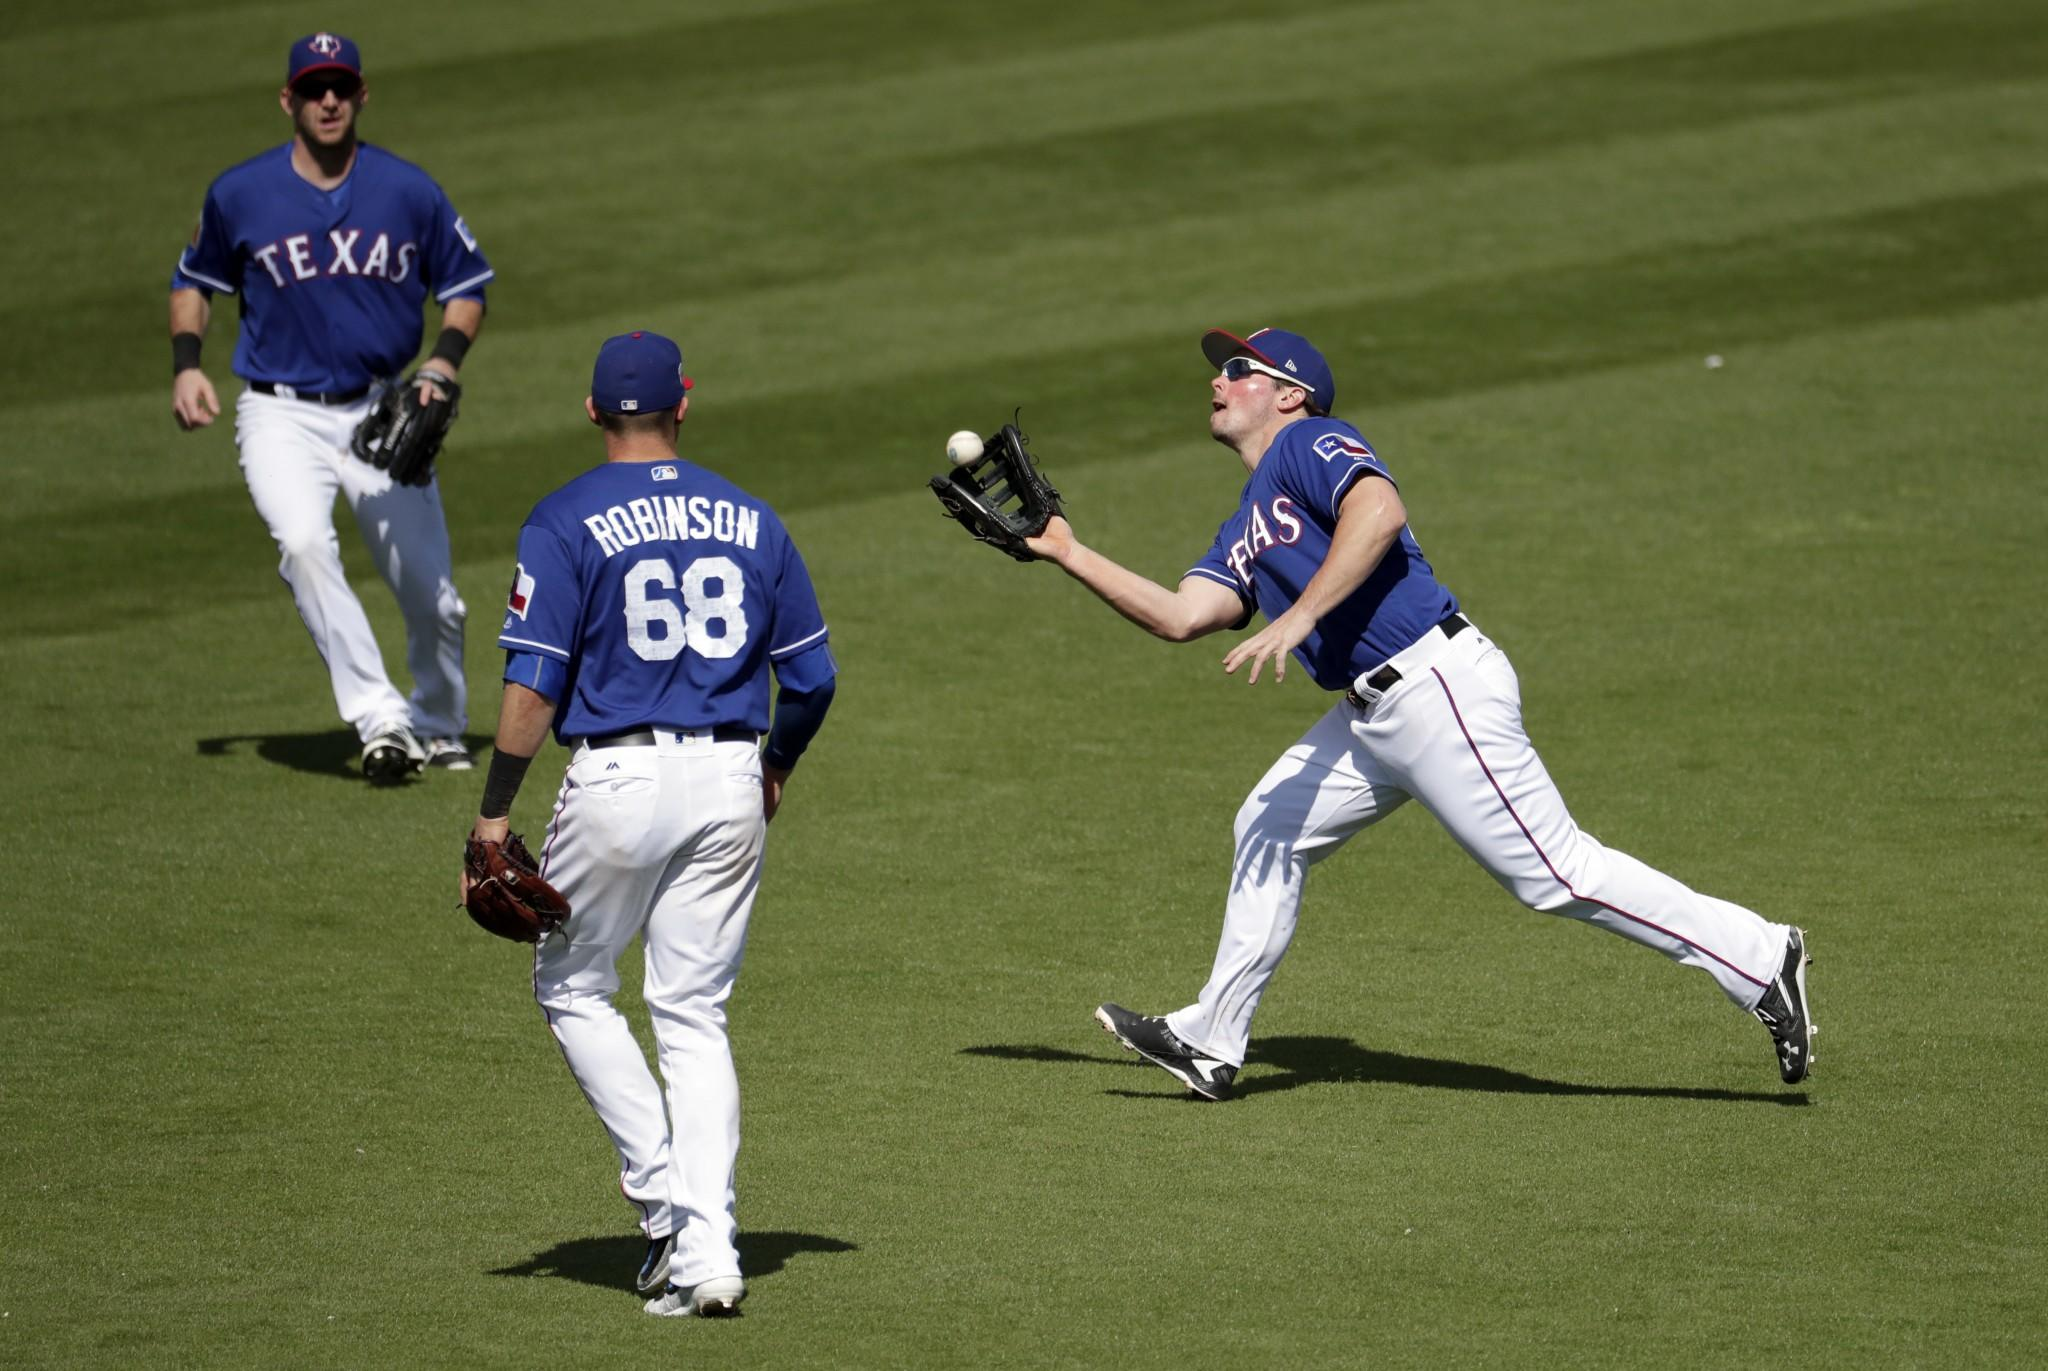 Texas Rangers won't let their players wear No. 69